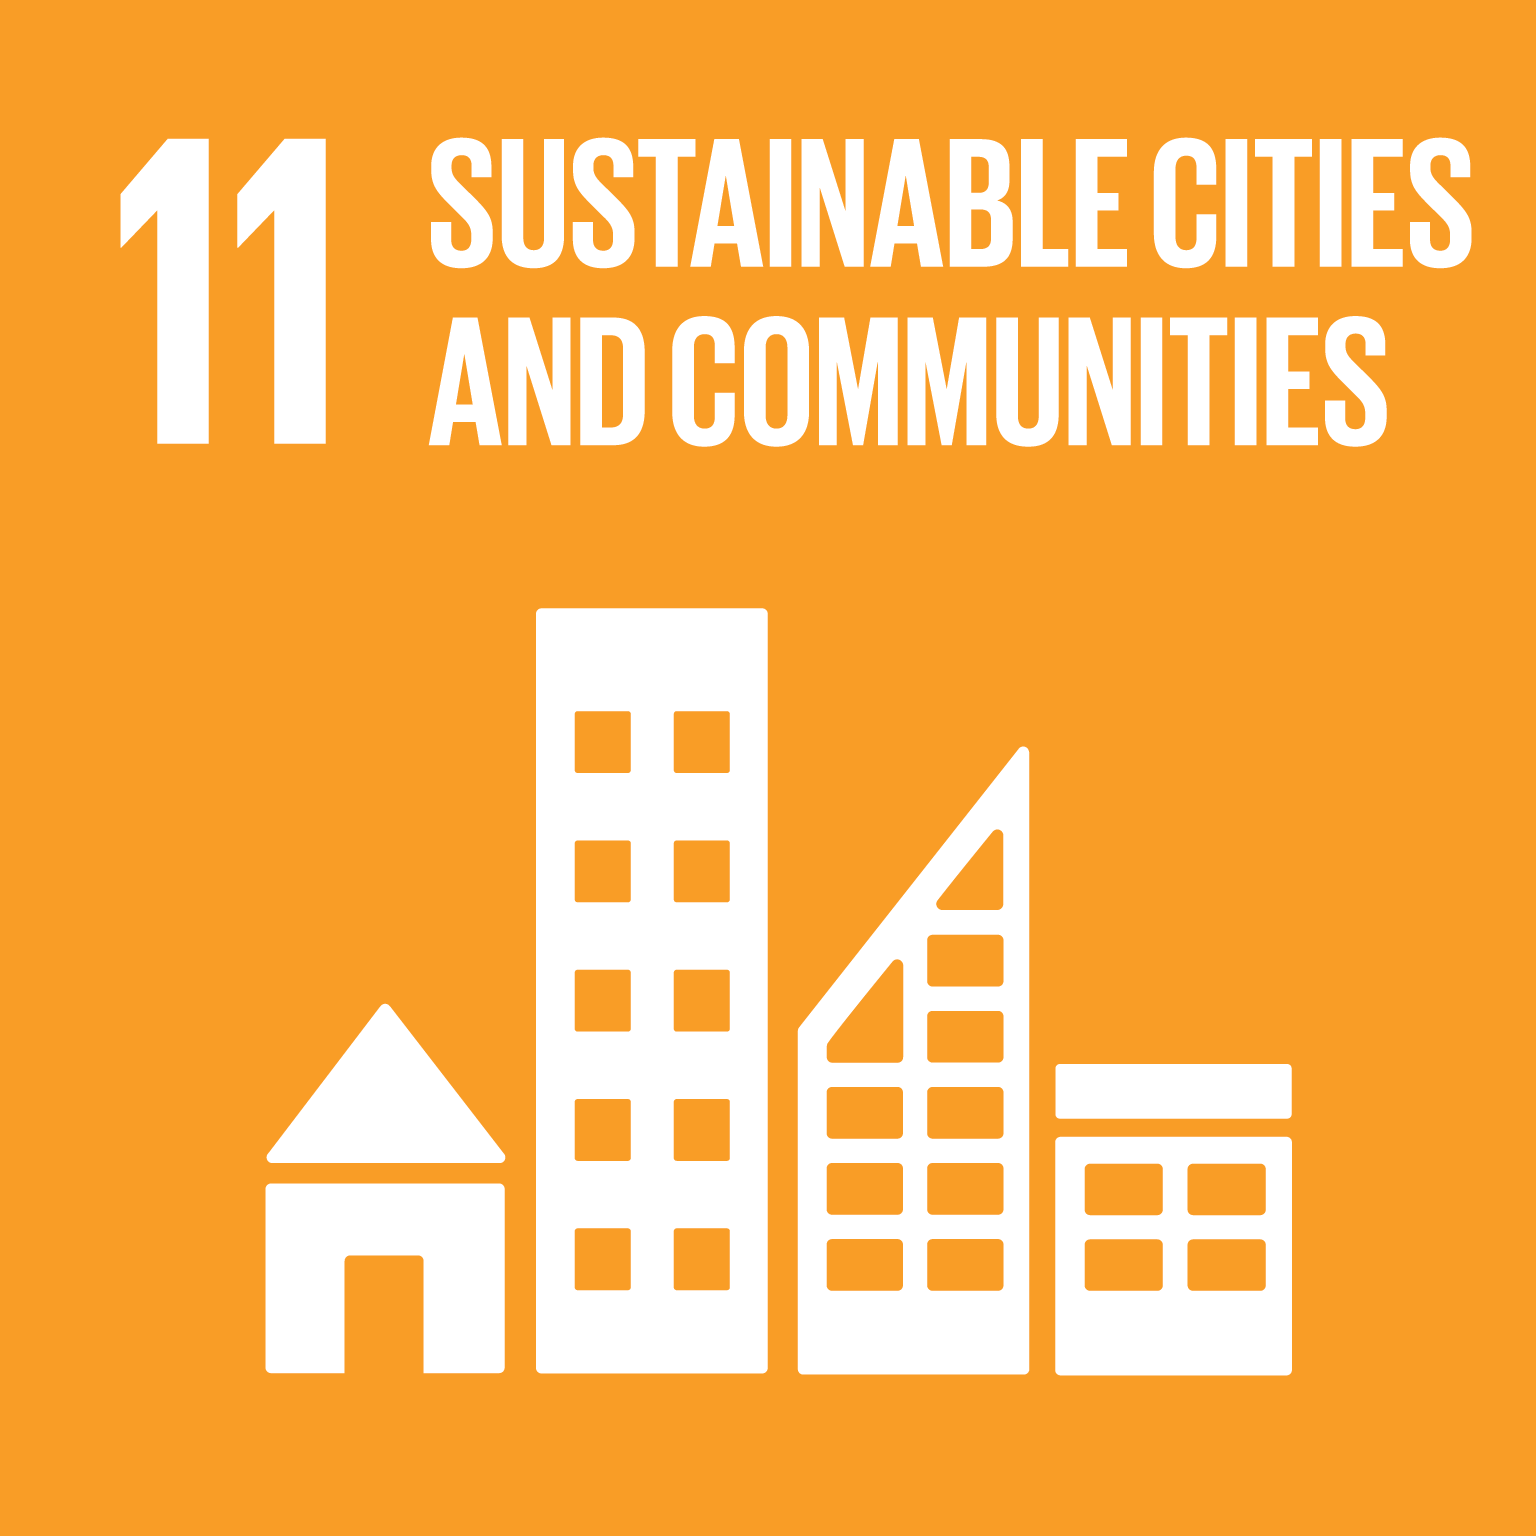 Sustainable Cities and Communities - Make cities inclusive, safe, resilient and sustainable